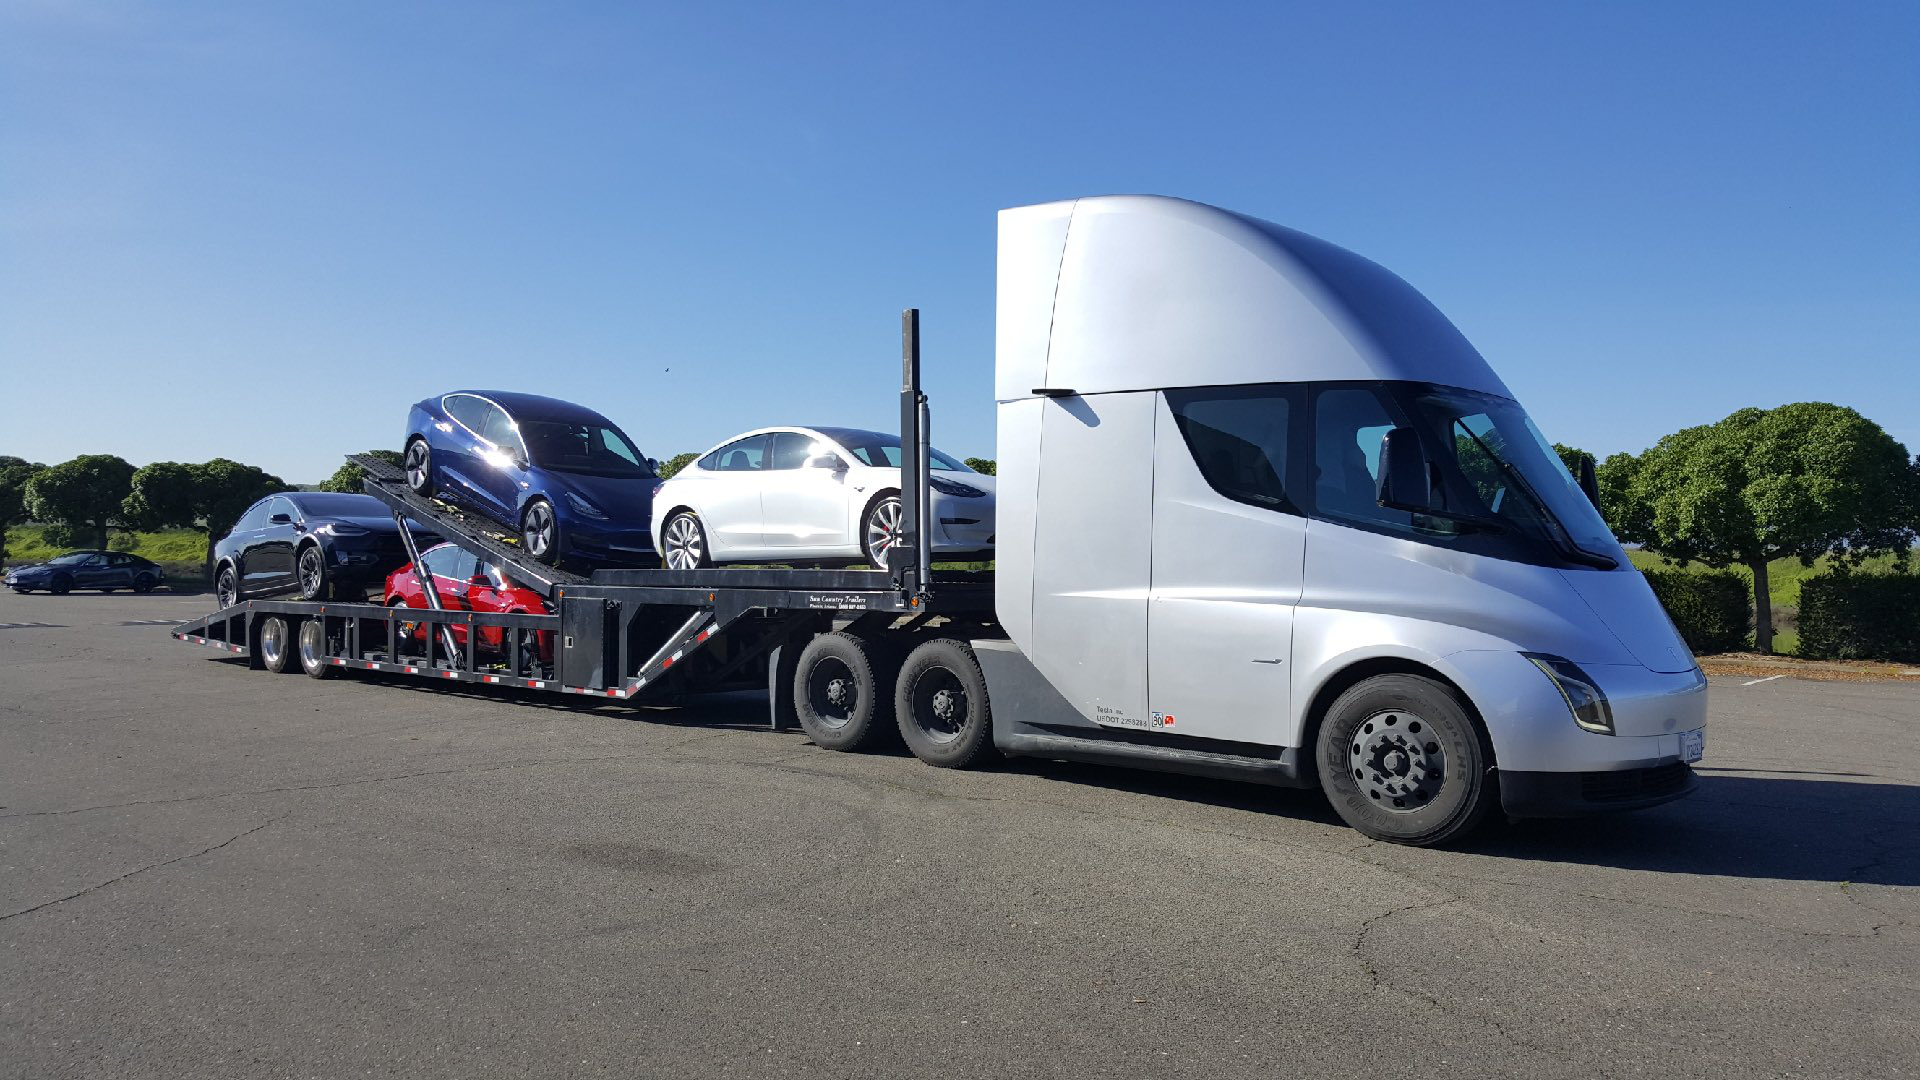 Tesla's electric semi-truck production on pace for next year